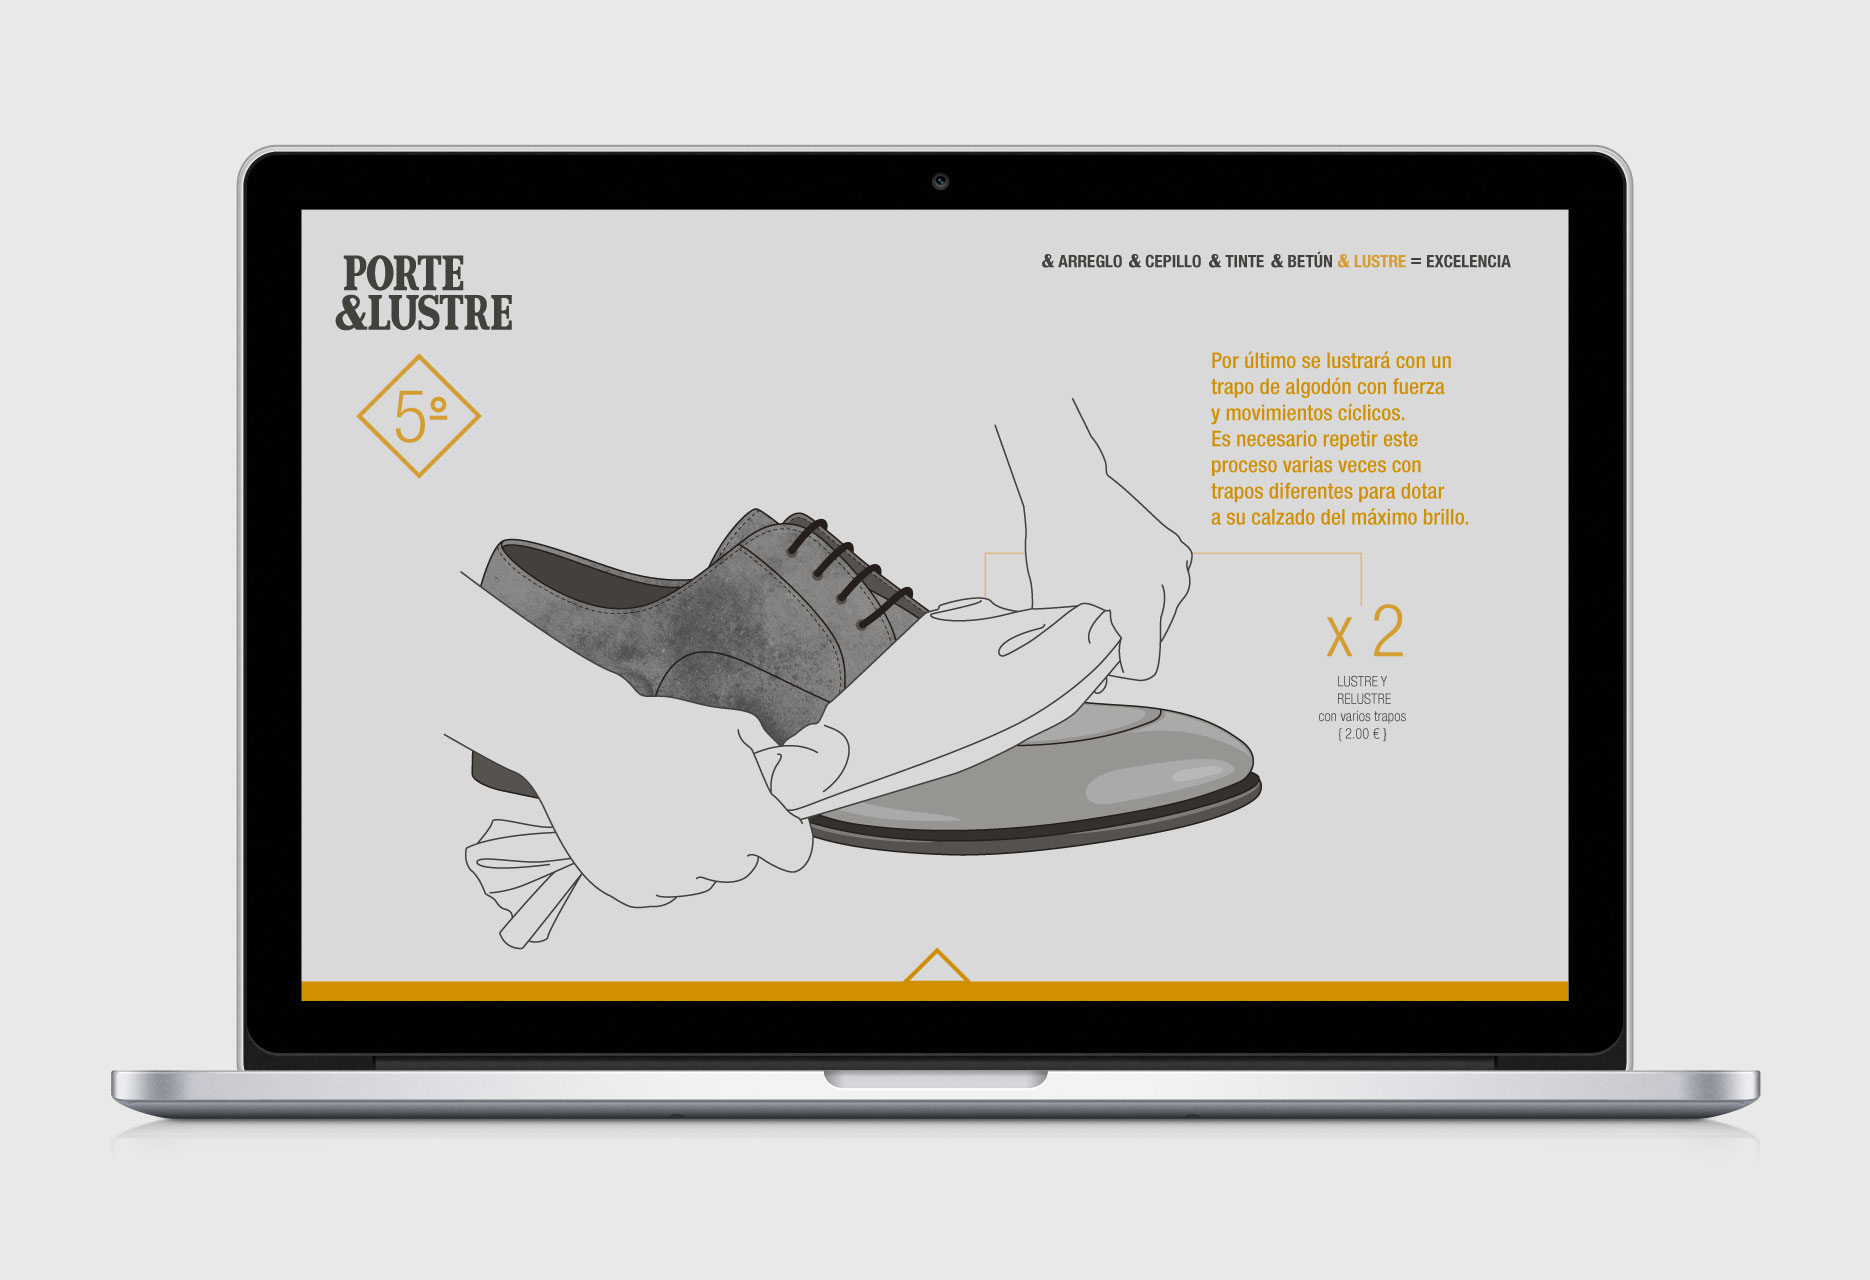 Shoeshiner brand design PORTE&LUSTRE - web design / branding / illustration - 2014